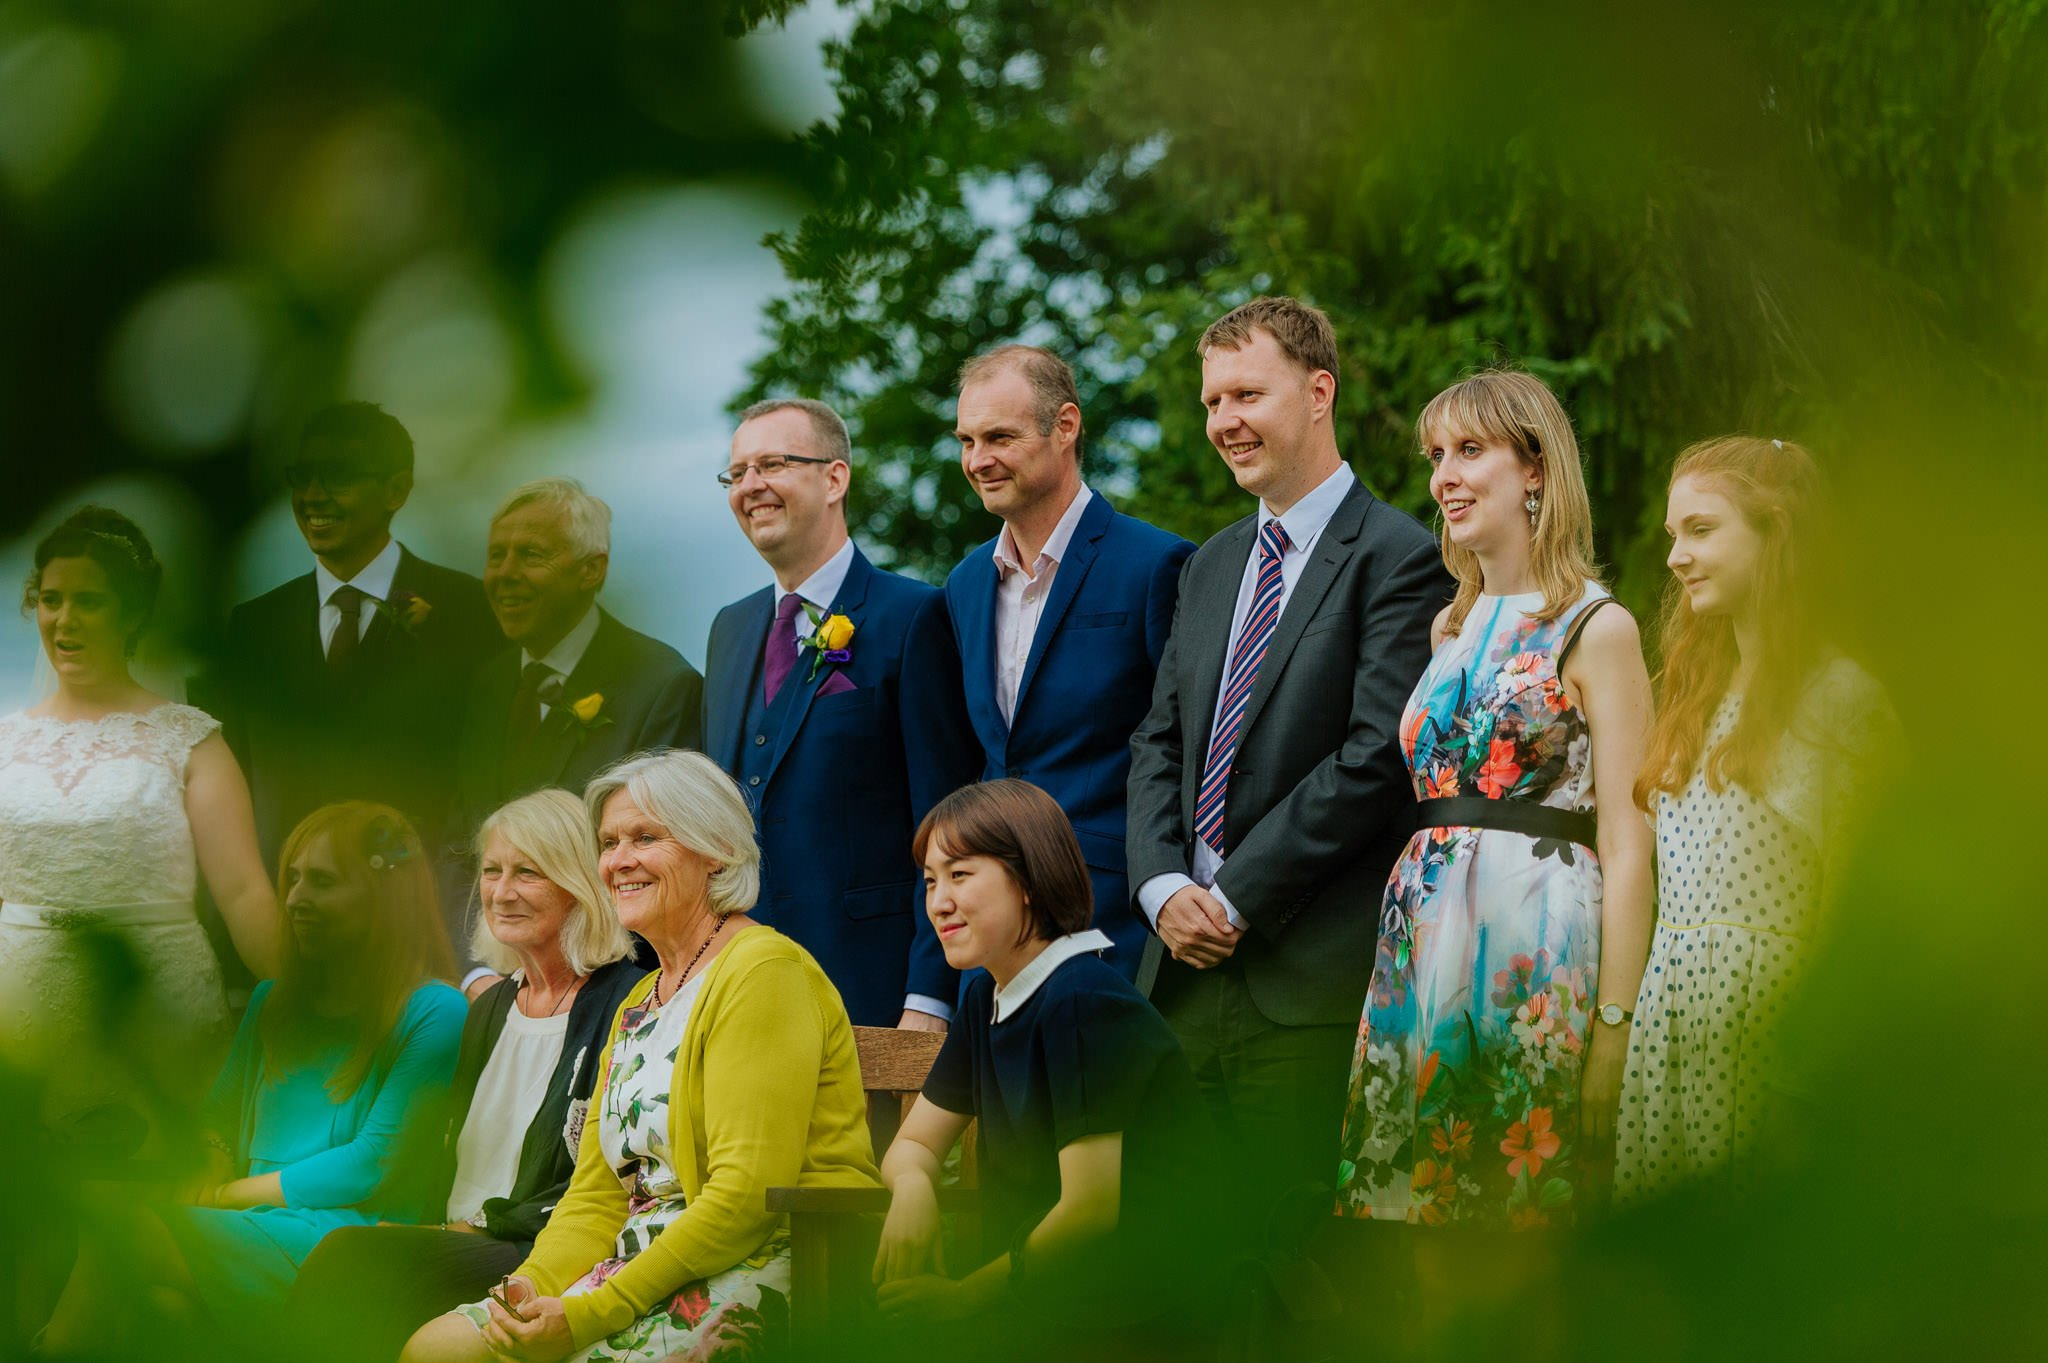 Wedding photography at Homme House in Herefordshire, West Midlands 77